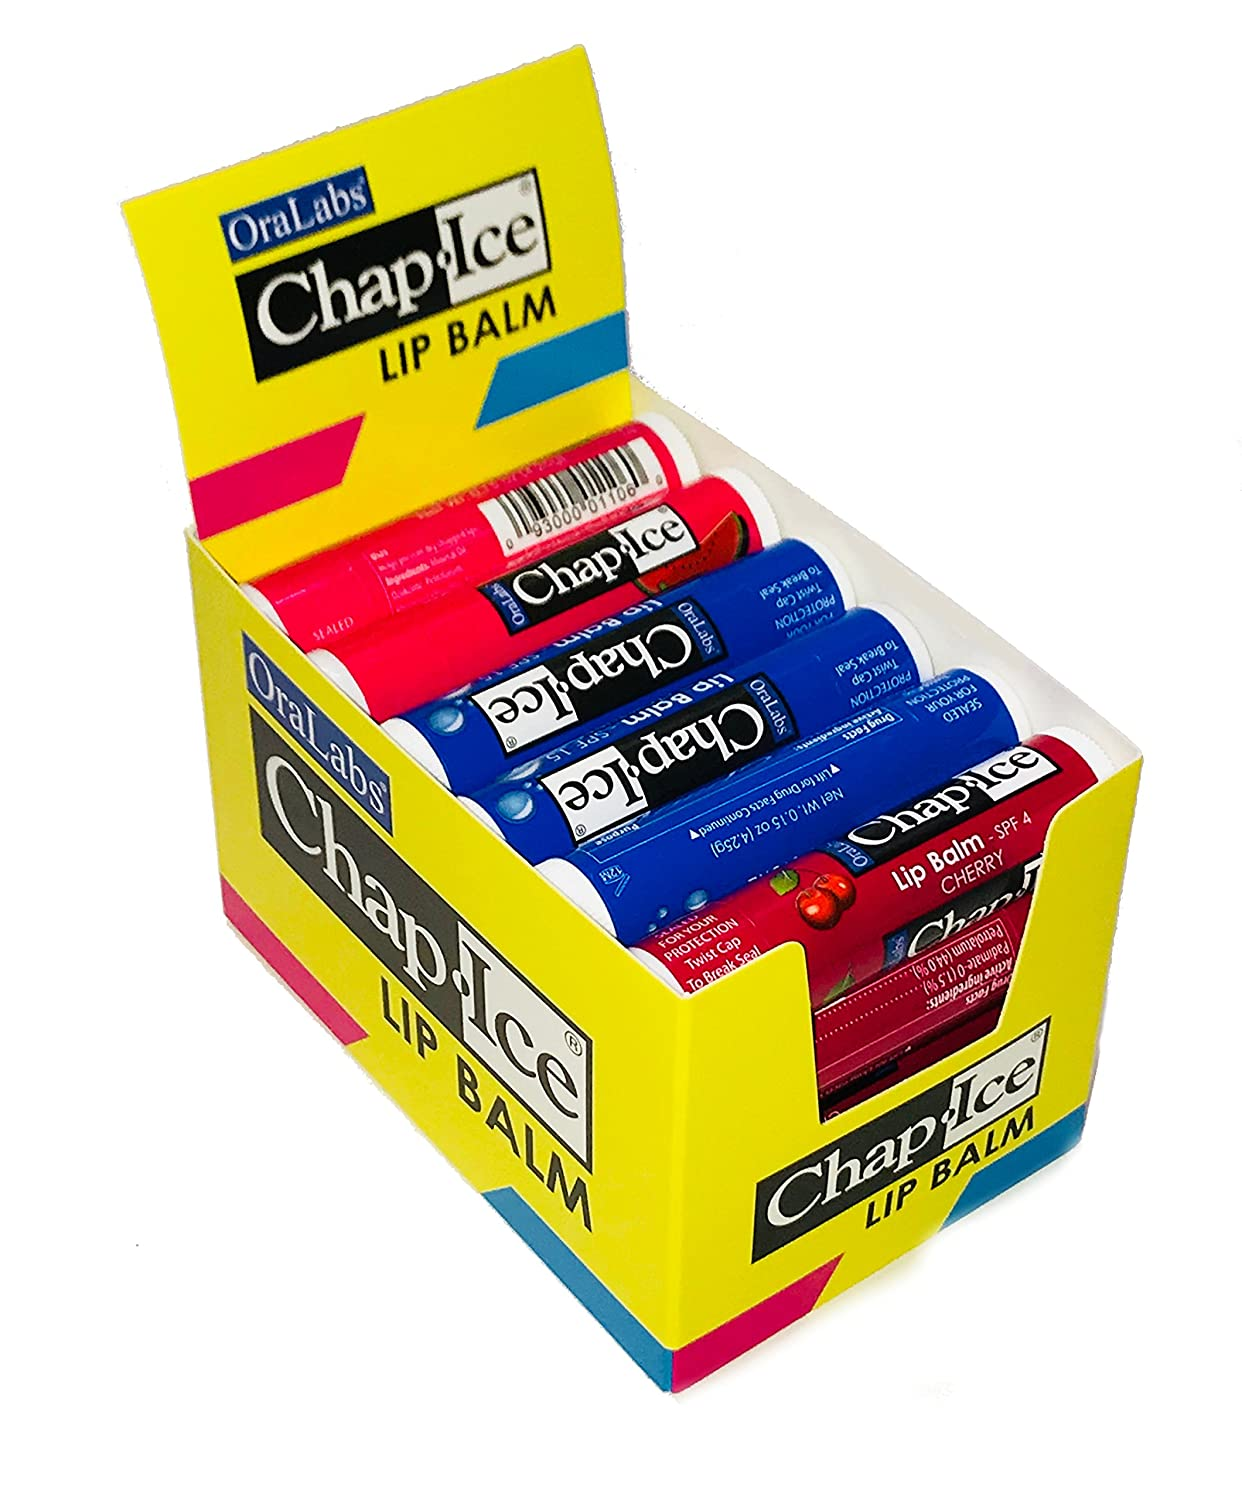 Chap Ice Assorted Lip Balm + Display Box - 24 pack Oralabs